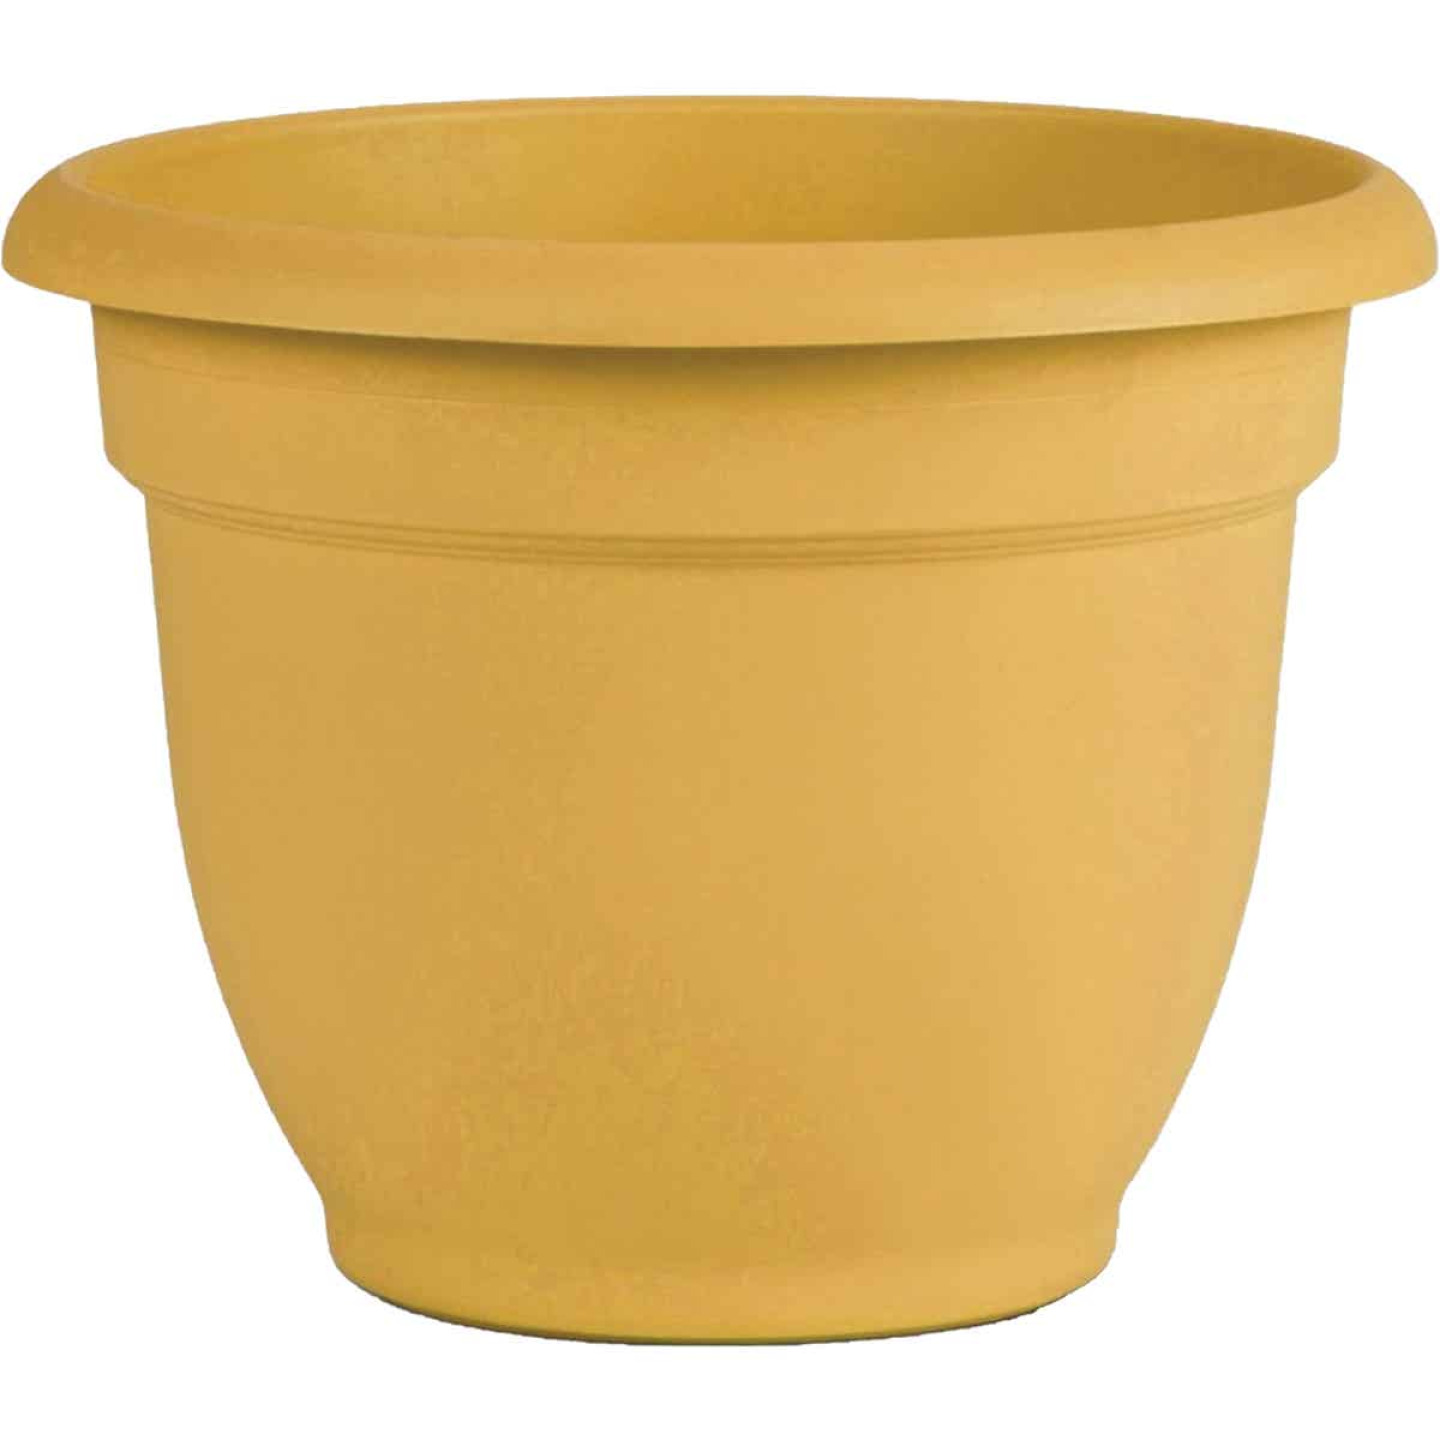 Bloem Ariana 6.5 In. H. x 6 In. Dia. Plastic Self Watering Earthy Yellow Planter Image 1